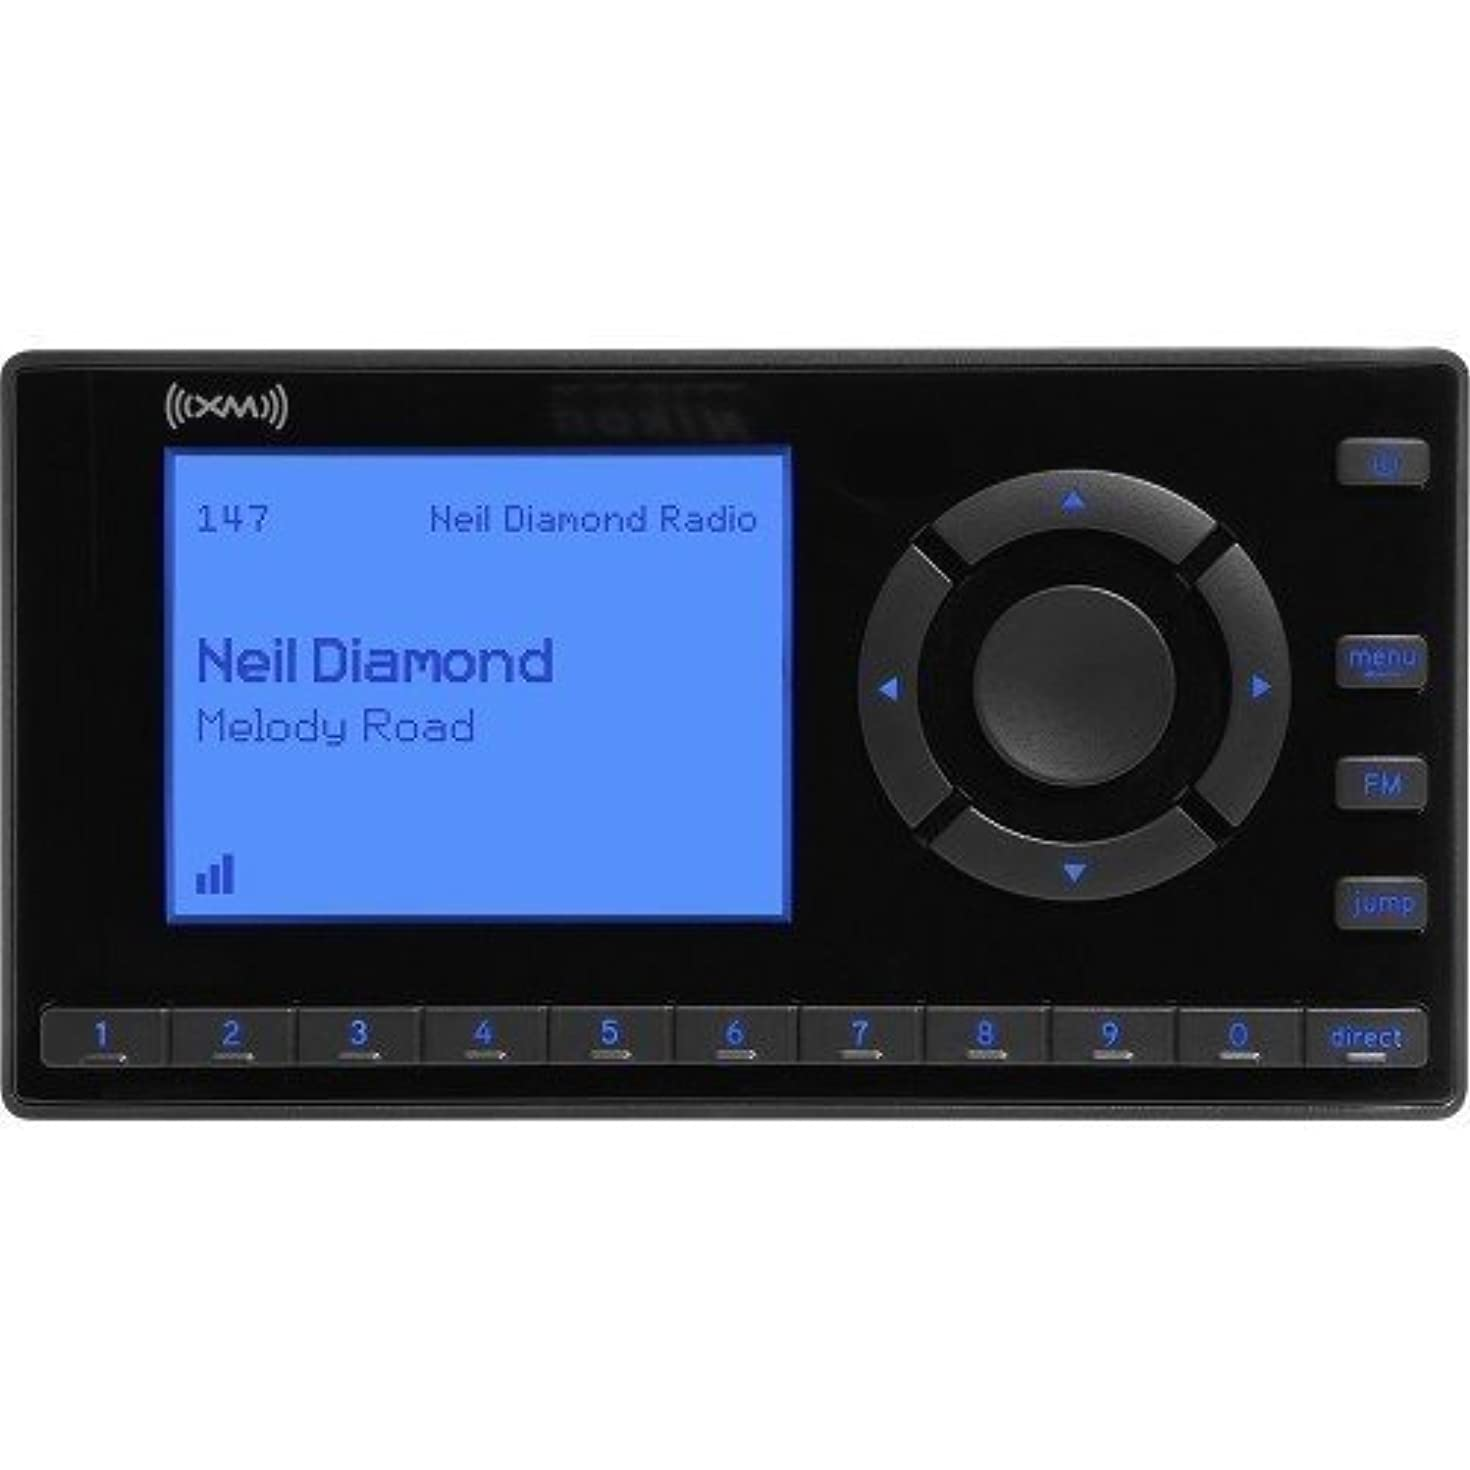 Sirius XM Onyx EZ radio - Radio only no accessories